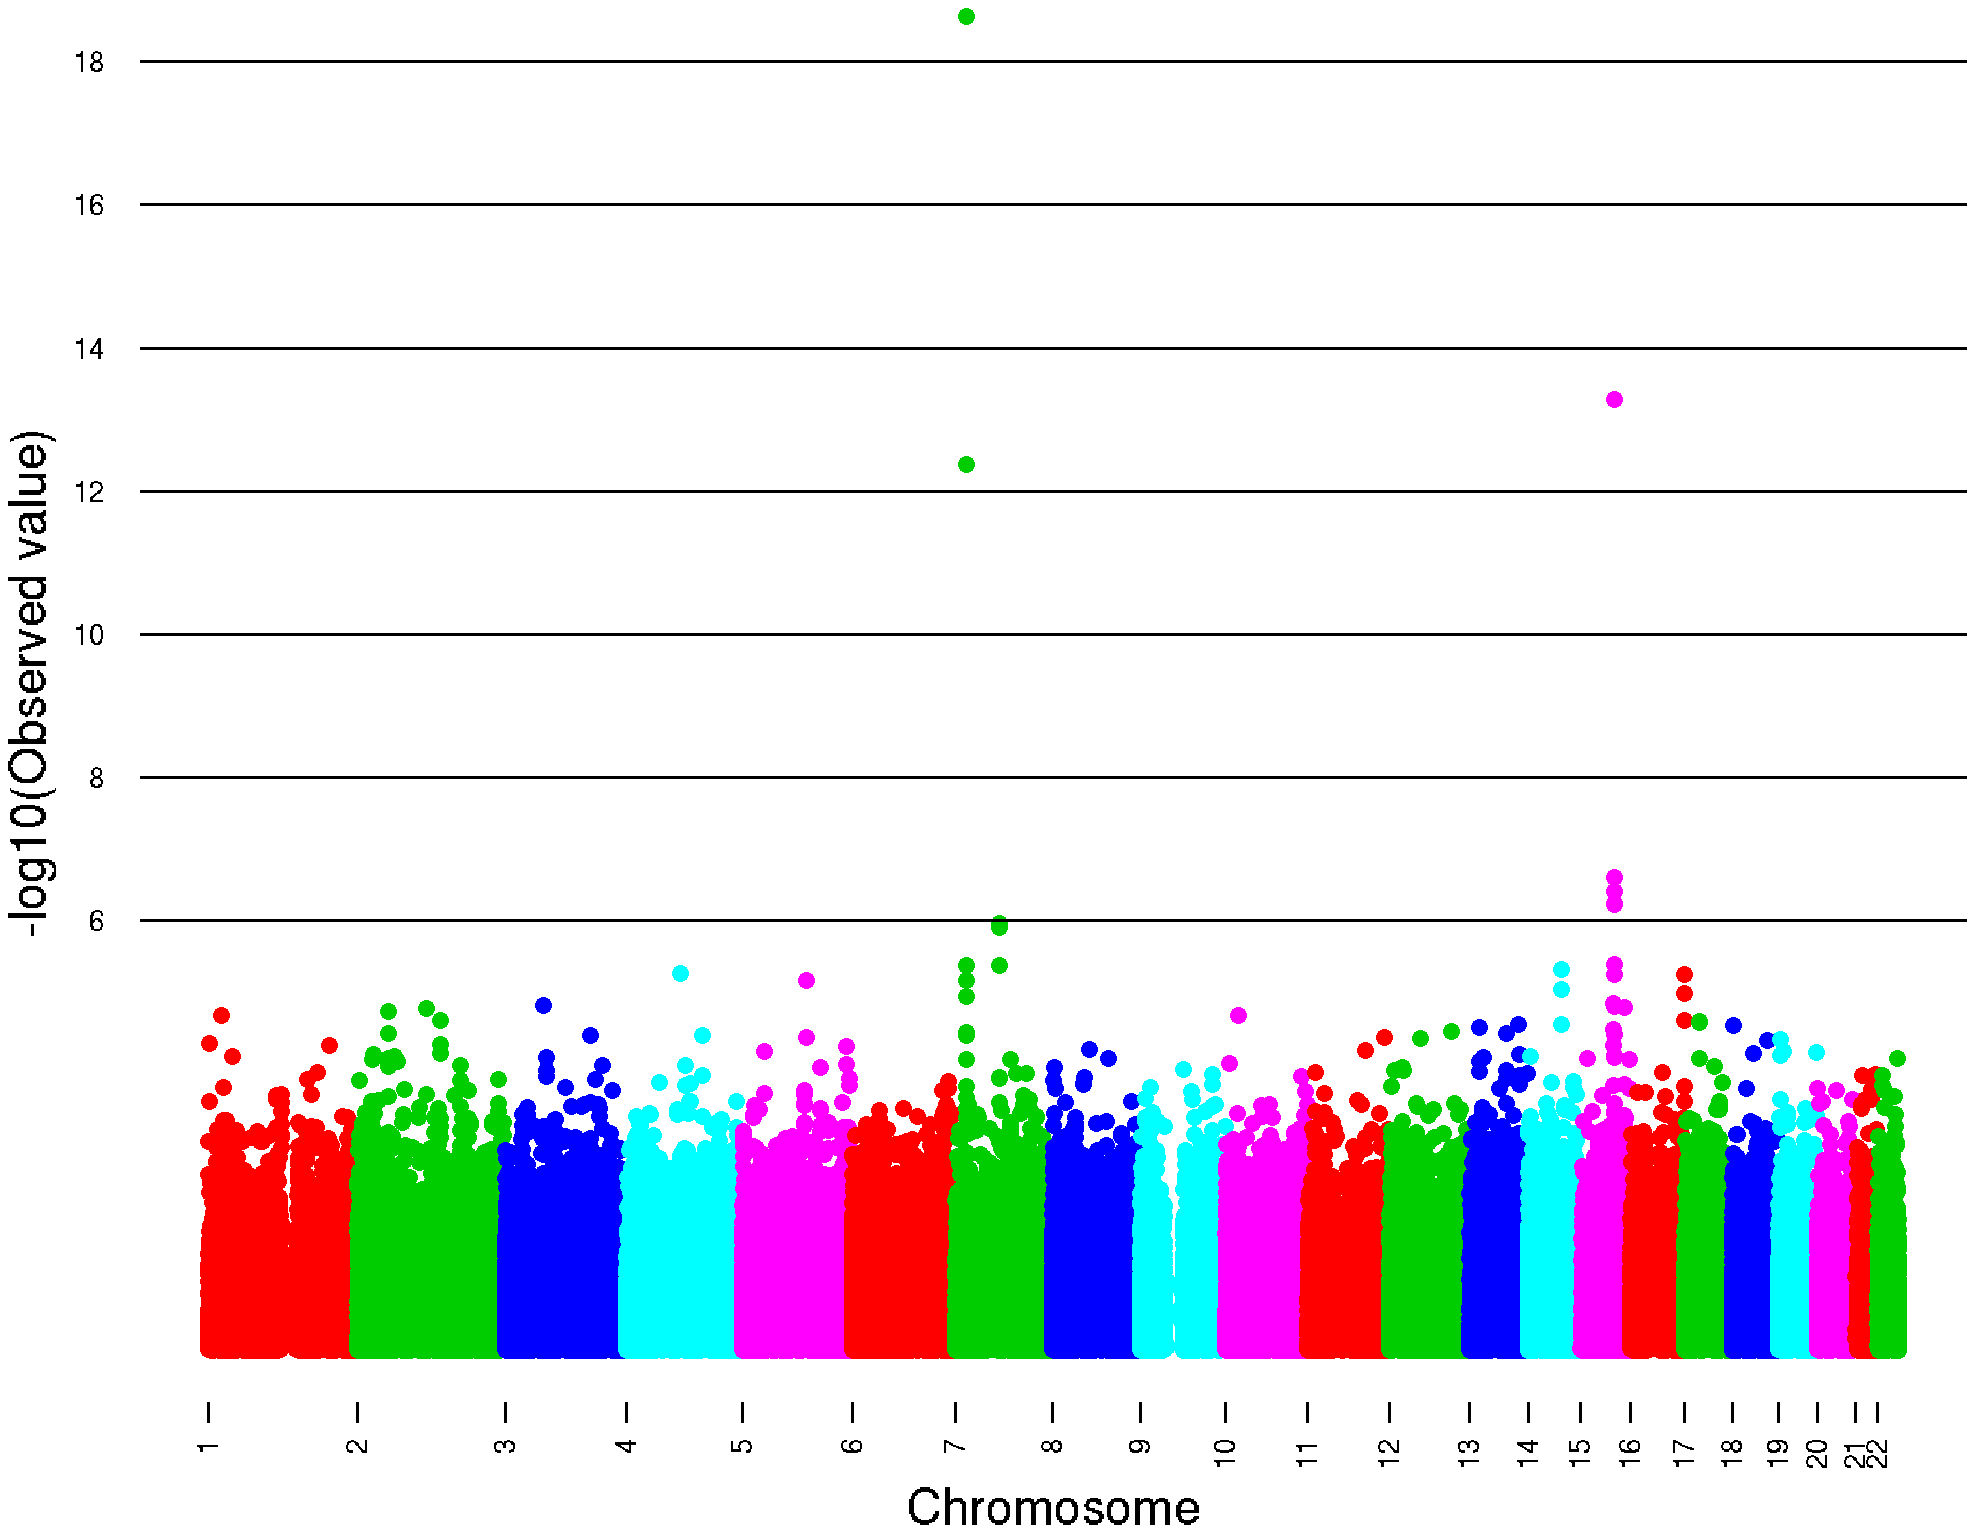 The –log10 P-plots for the genome-wide meta-analysis of caffeine consumption.